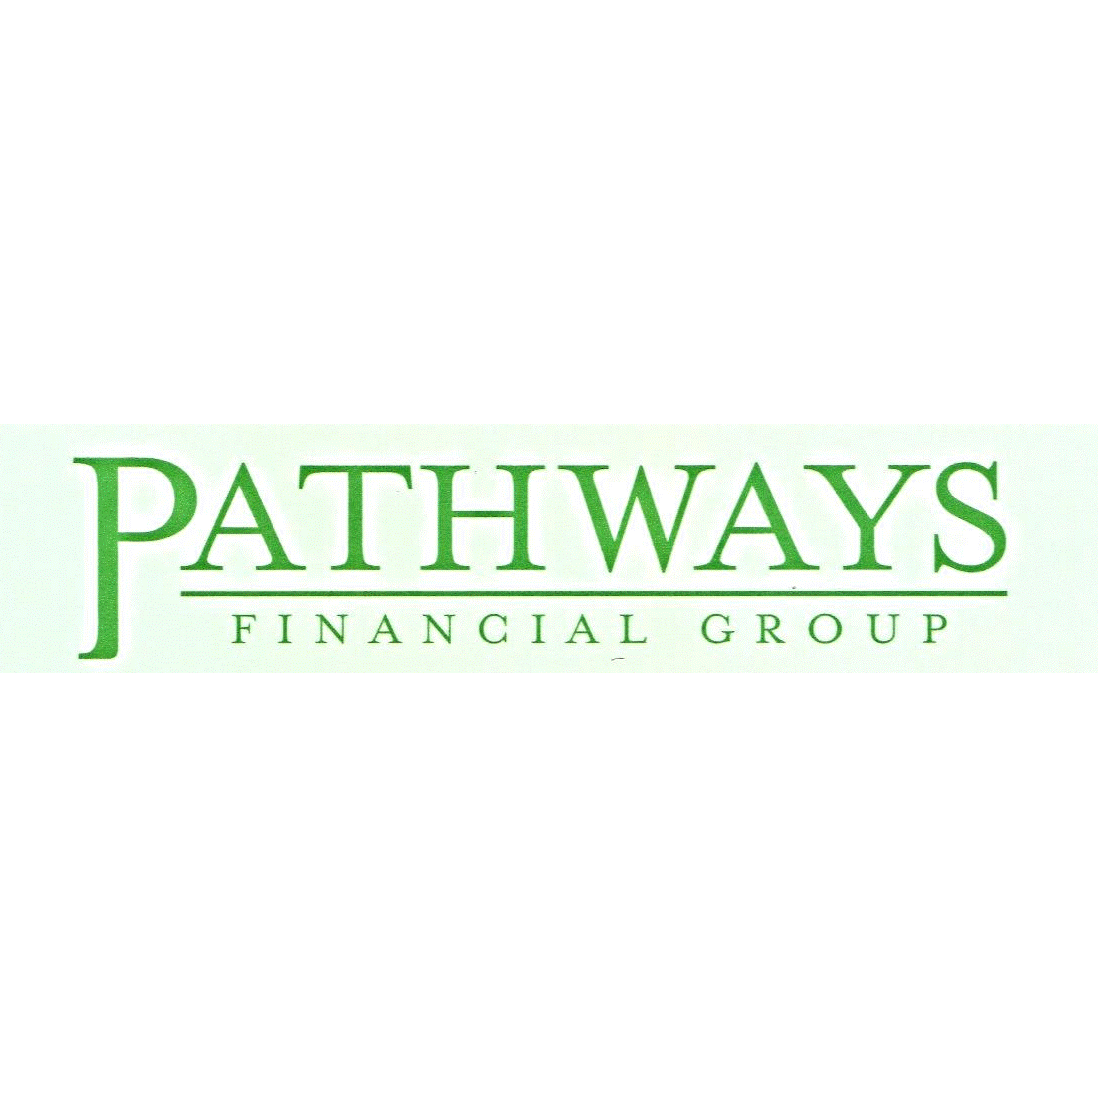 Pathways Financial Group